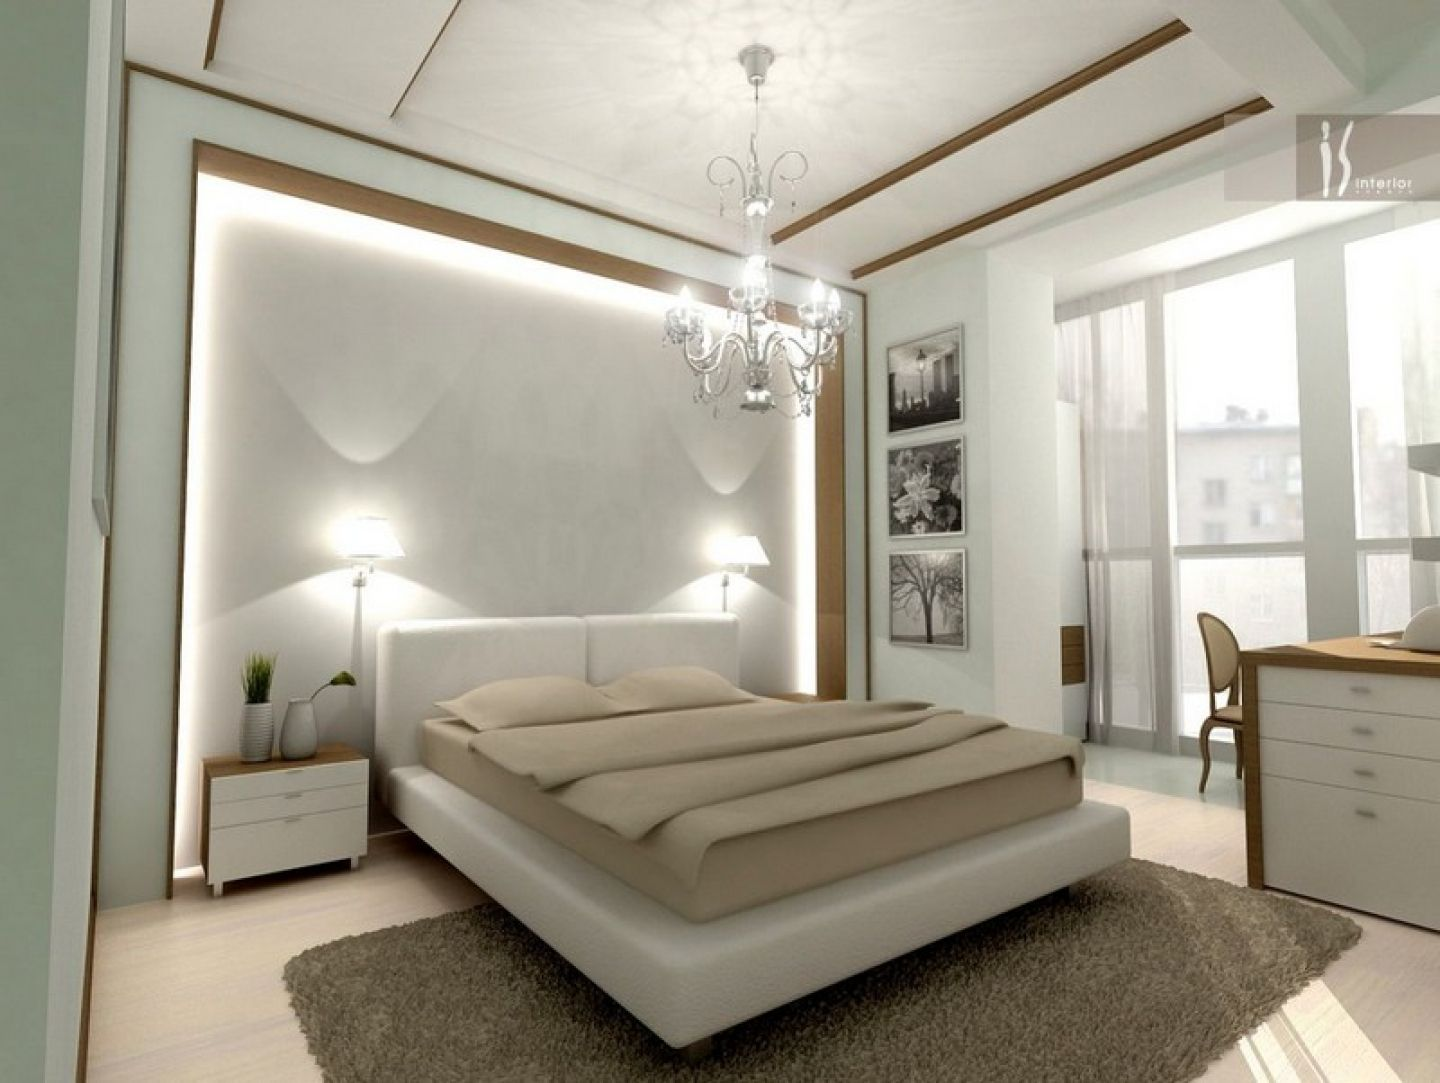 Bedroom Colors For Married Couples romantic and elegant bedroom design ideas for couple | bedroom